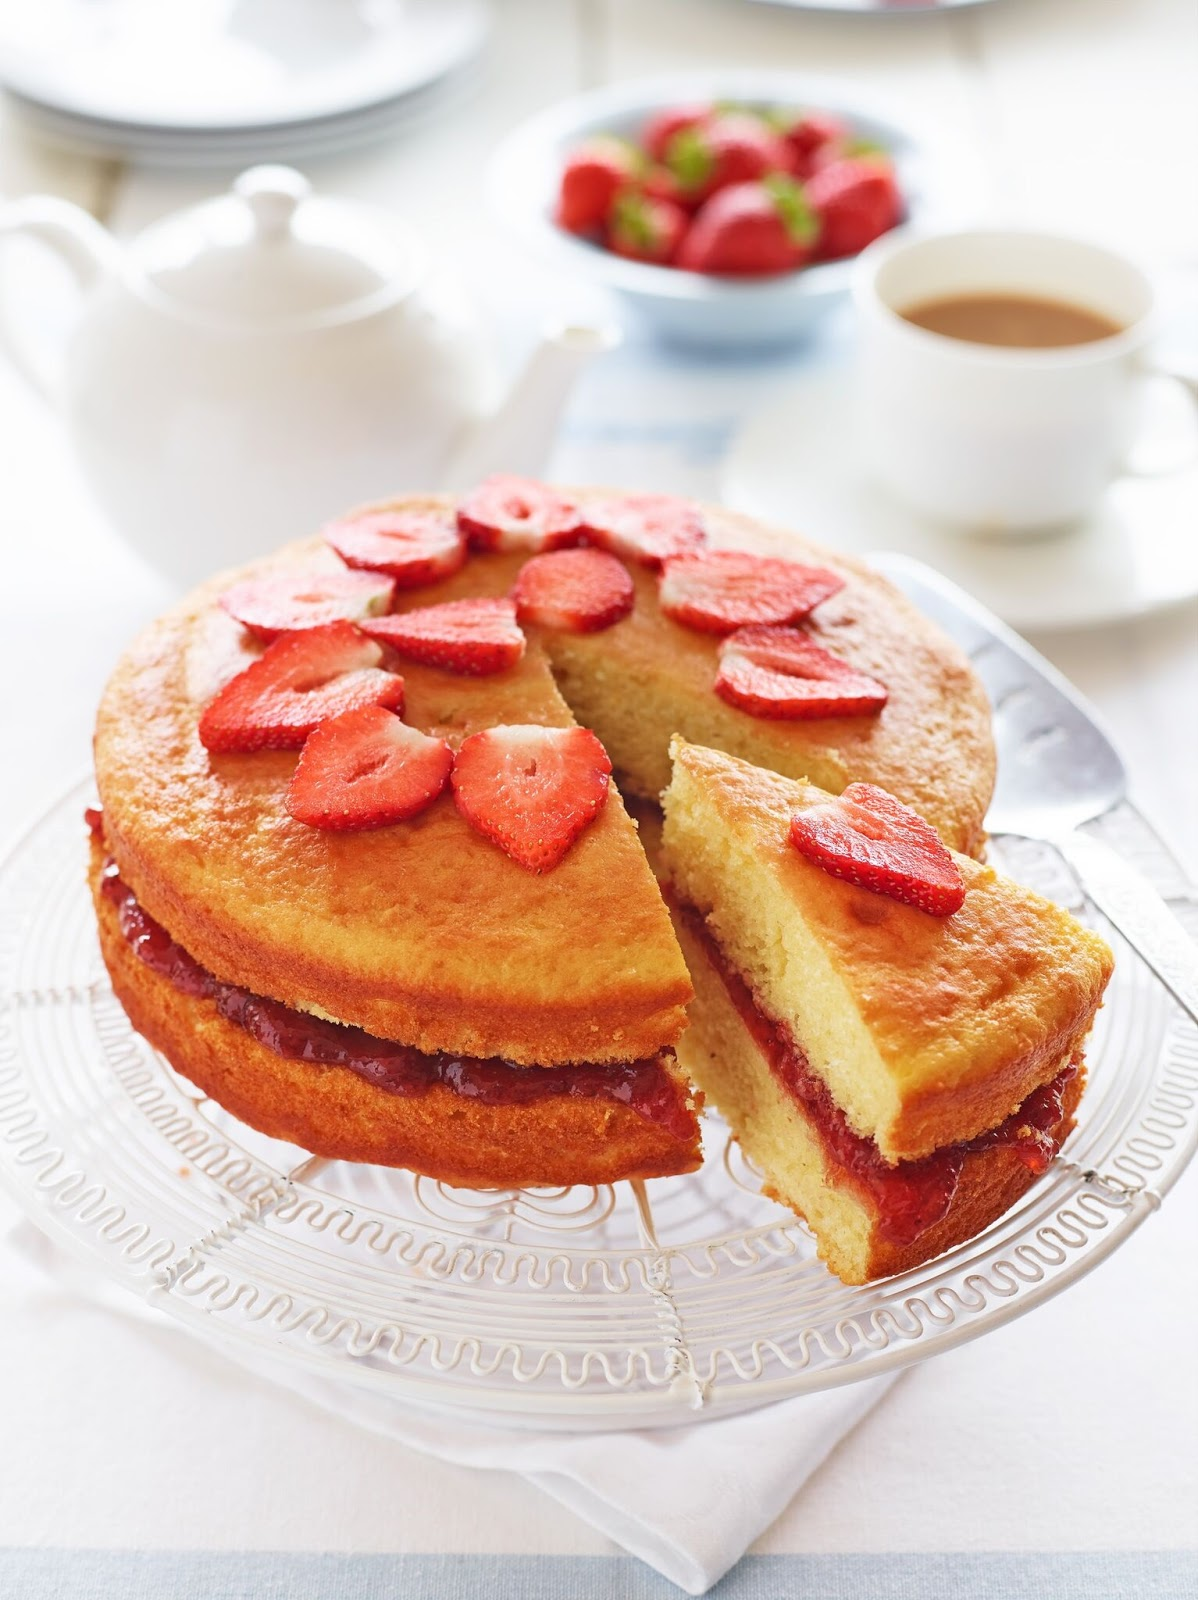 How To Make A Healthier Victoria Sponge